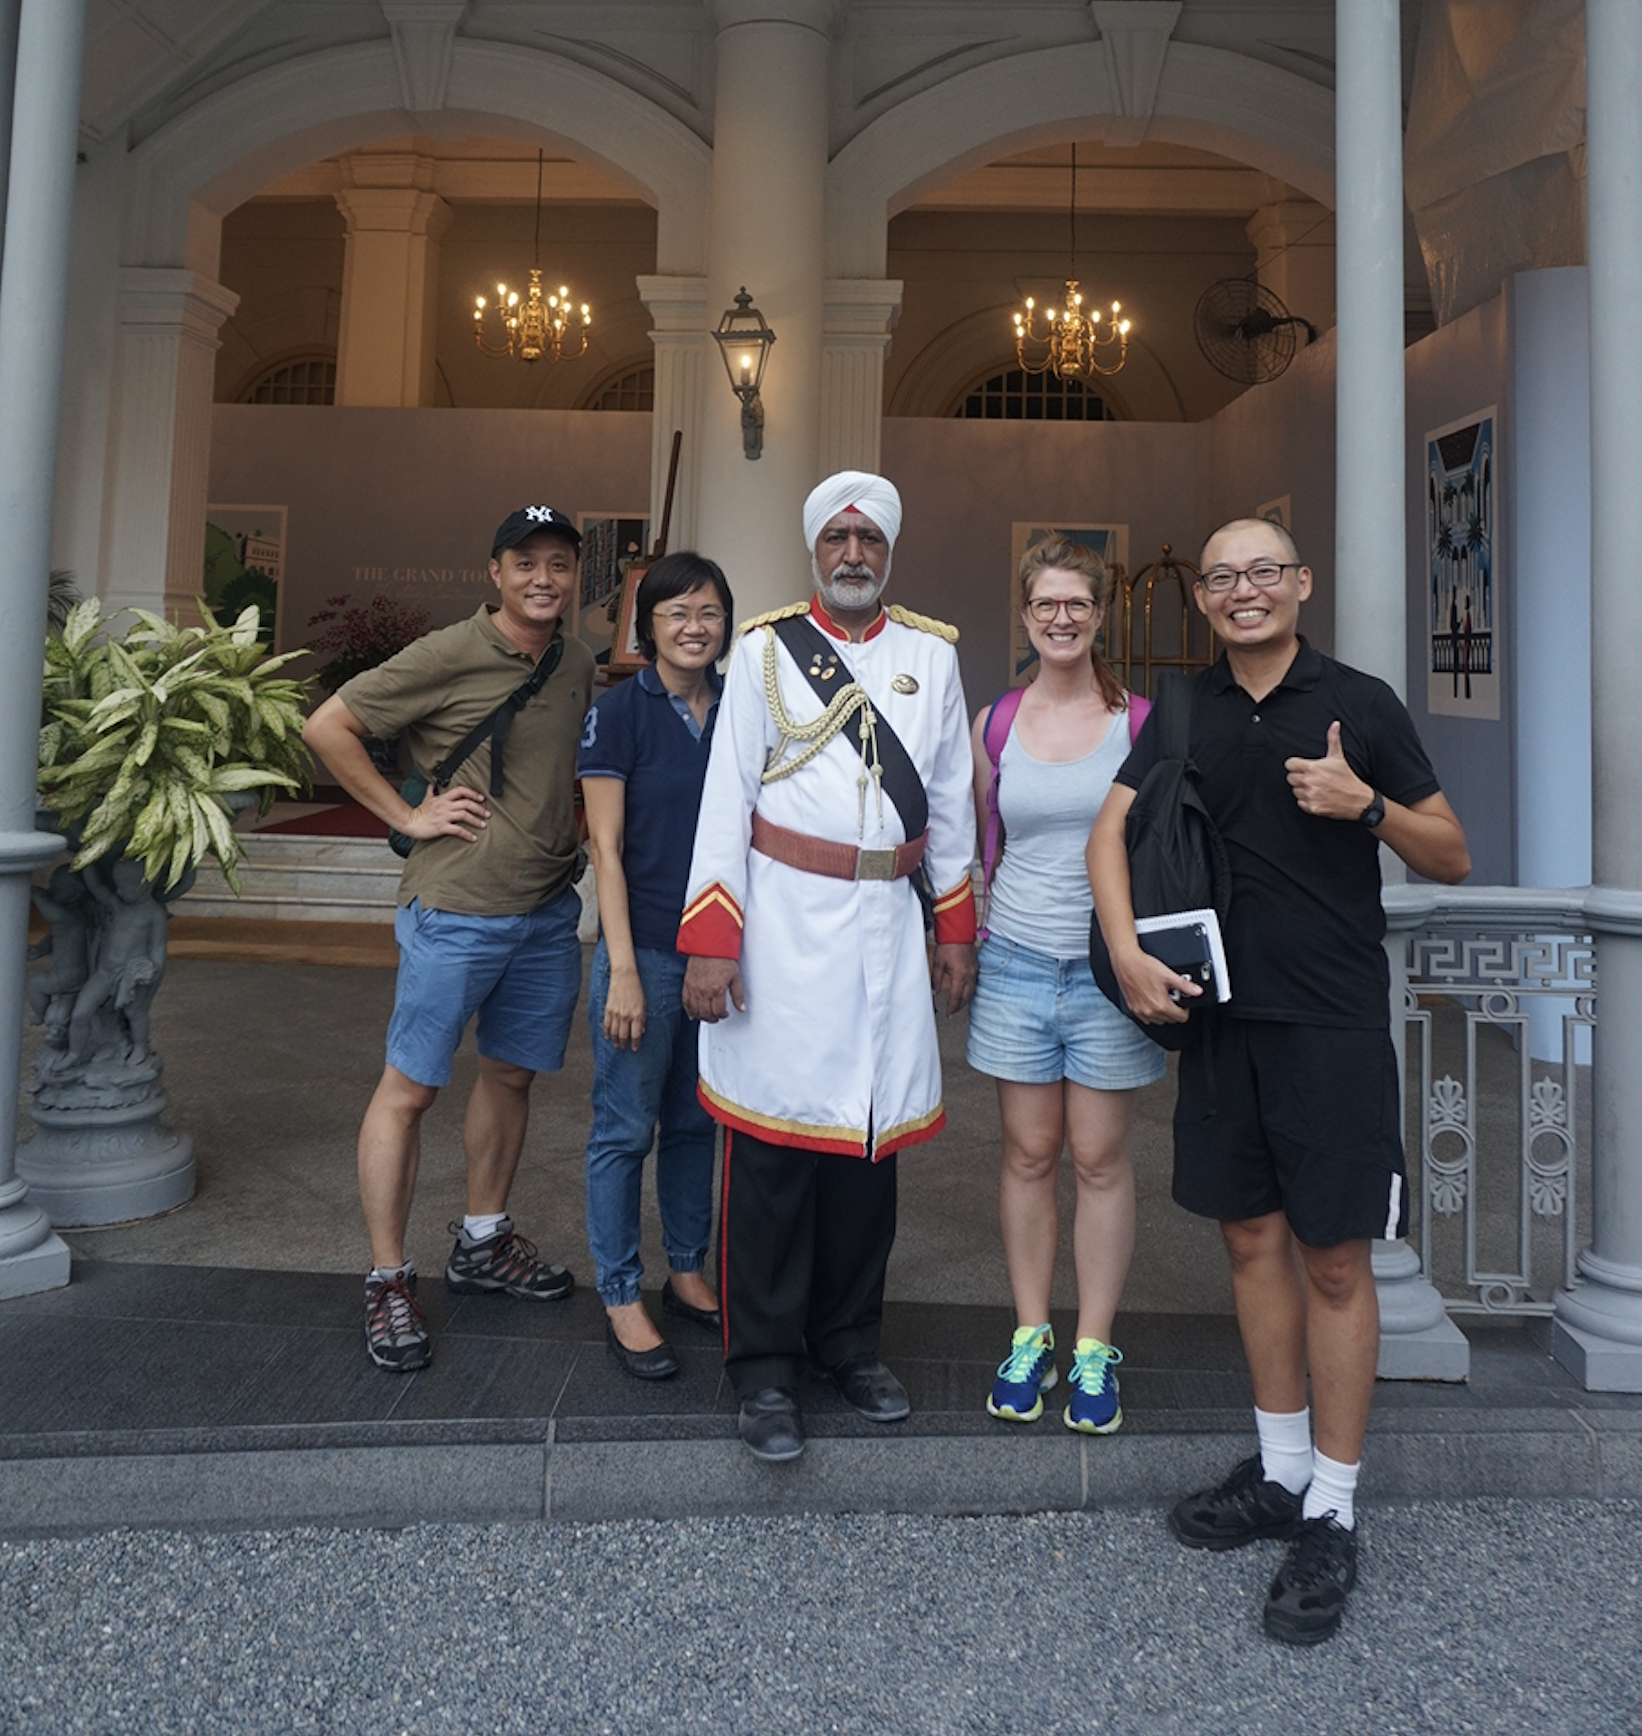 The Hello Singapore team of Singapore walking tours guides